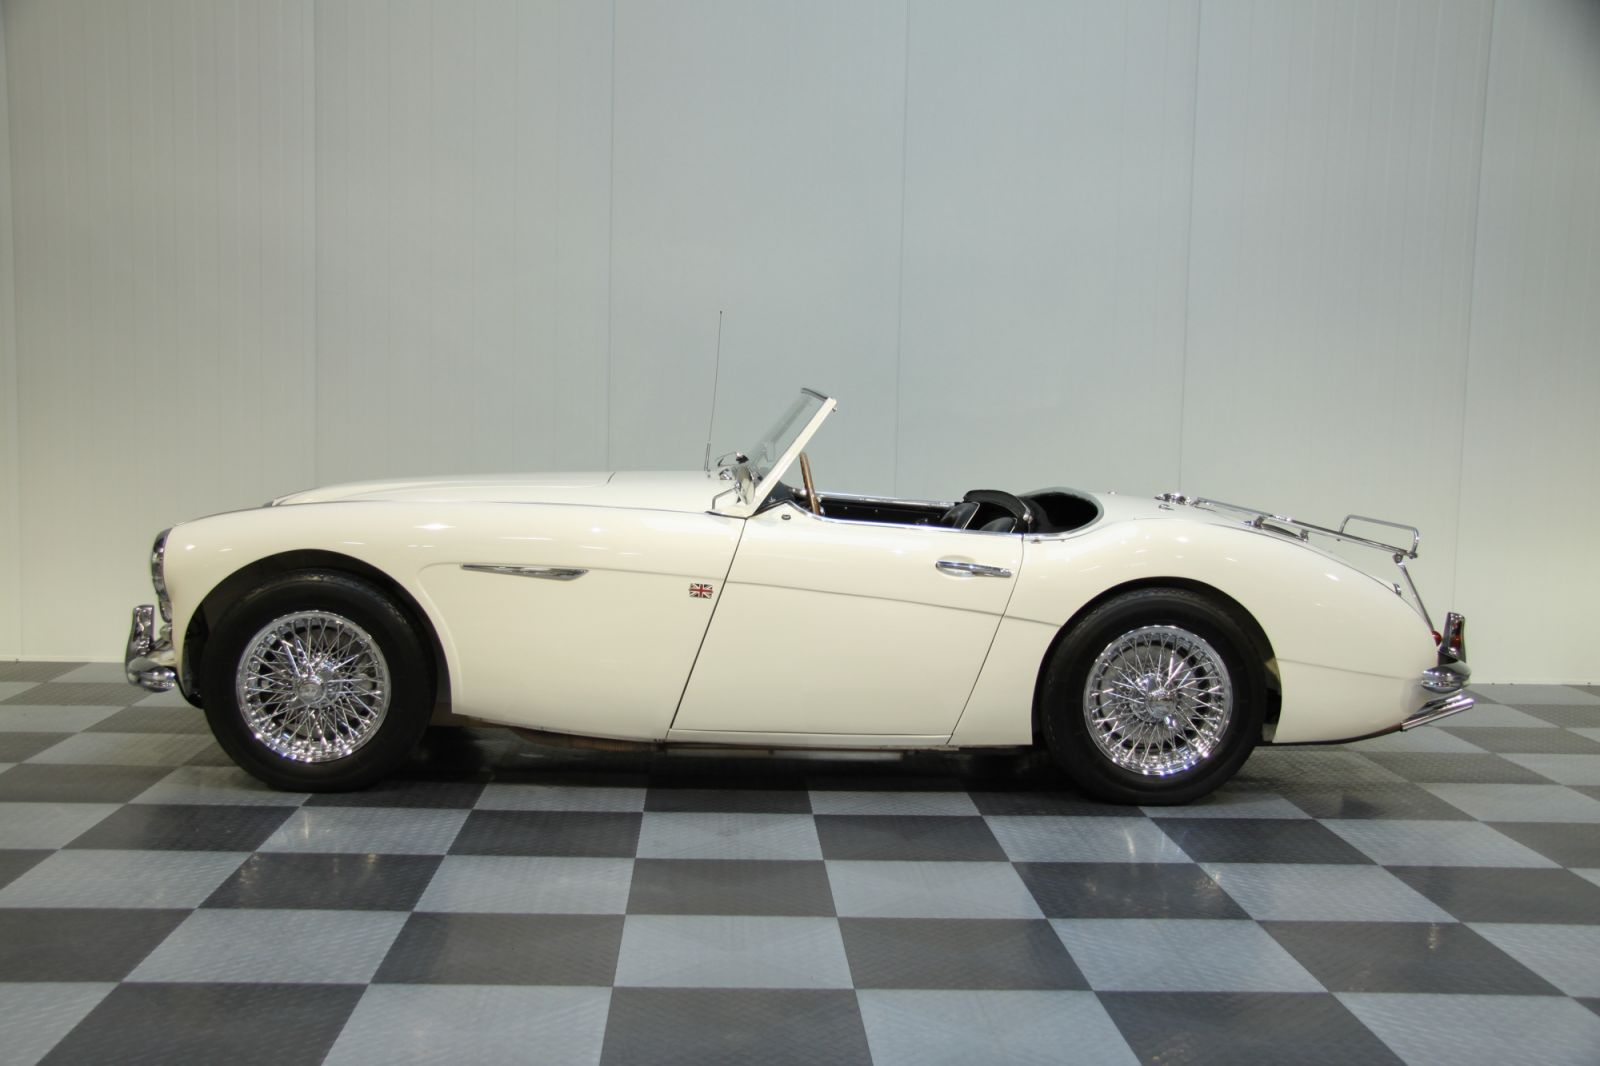 dream garage sold carsaustin healey austin healey 3000 mki bn7. Black Bedroom Furniture Sets. Home Design Ideas